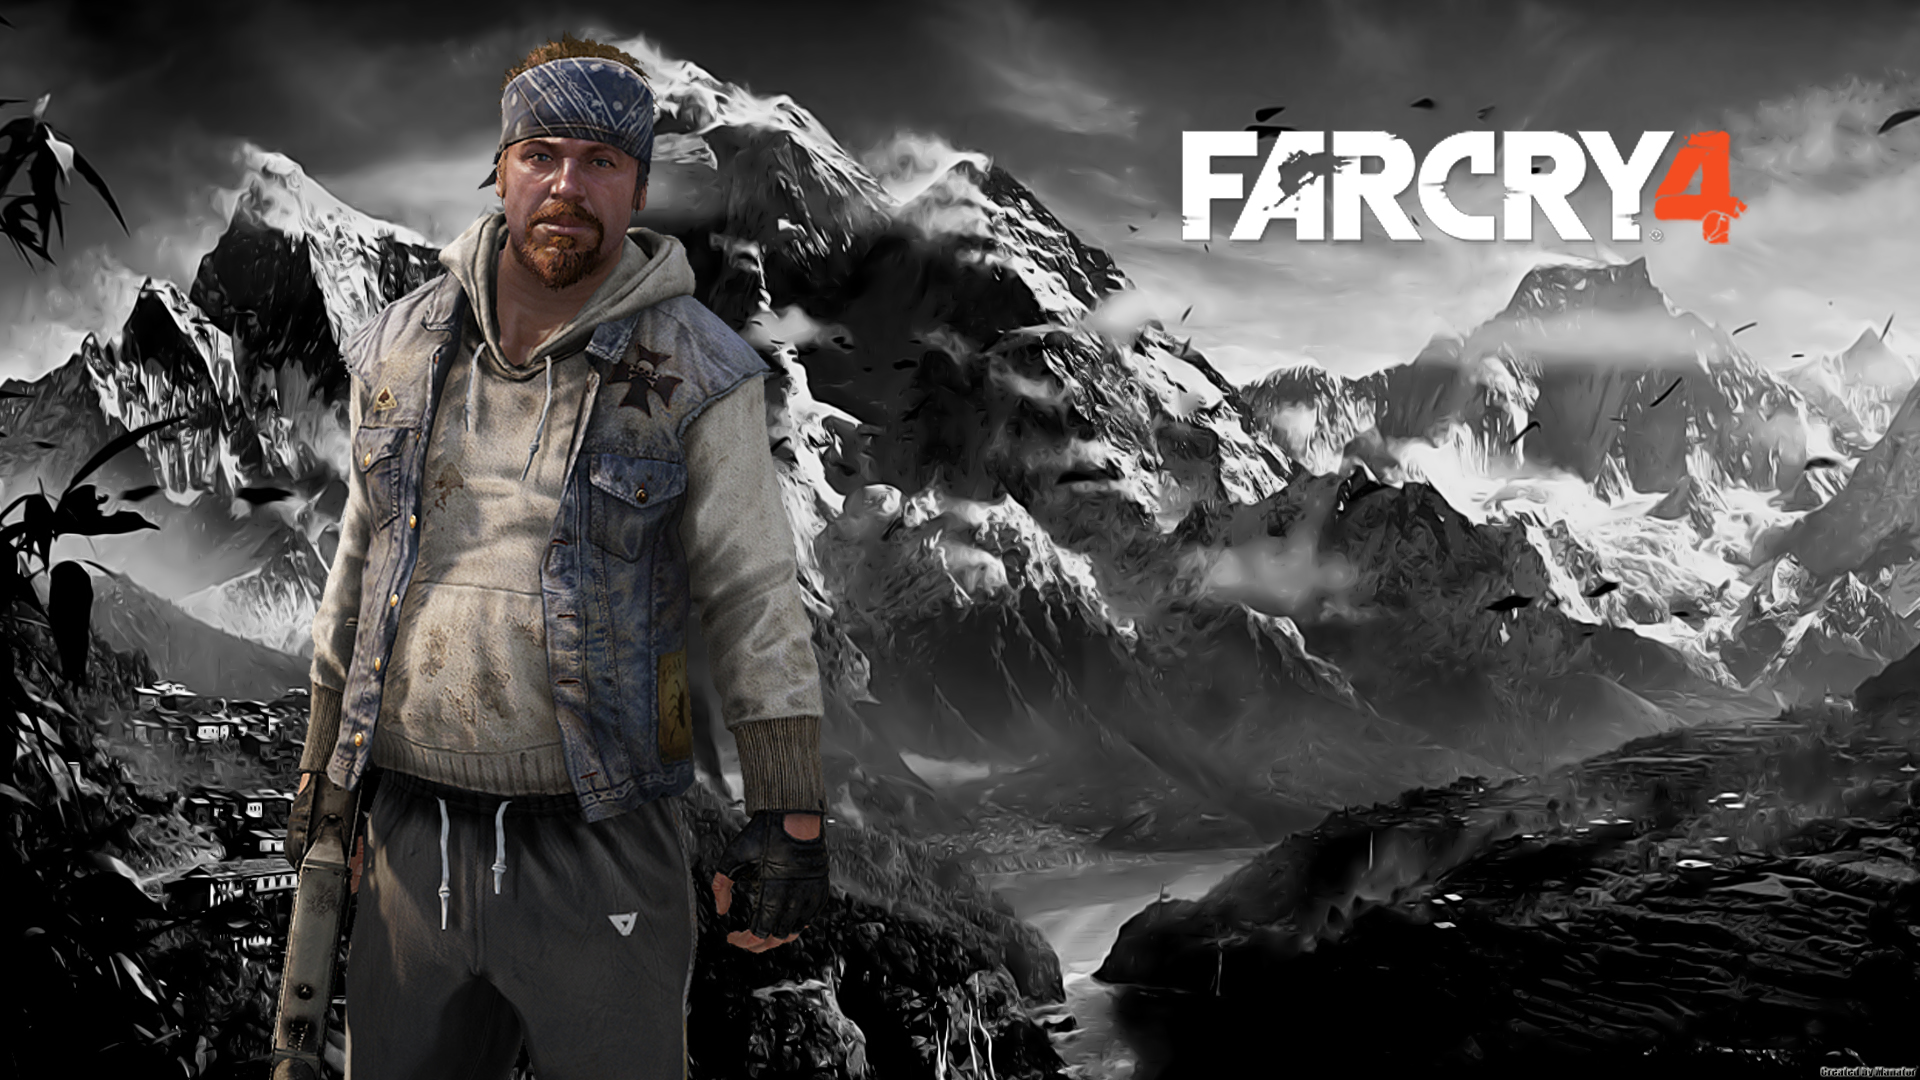 God Of War Mobile Wallpaper Hd 1080p Far Cry 4 Wallpaper Free Downloads 9025 Wallpaper